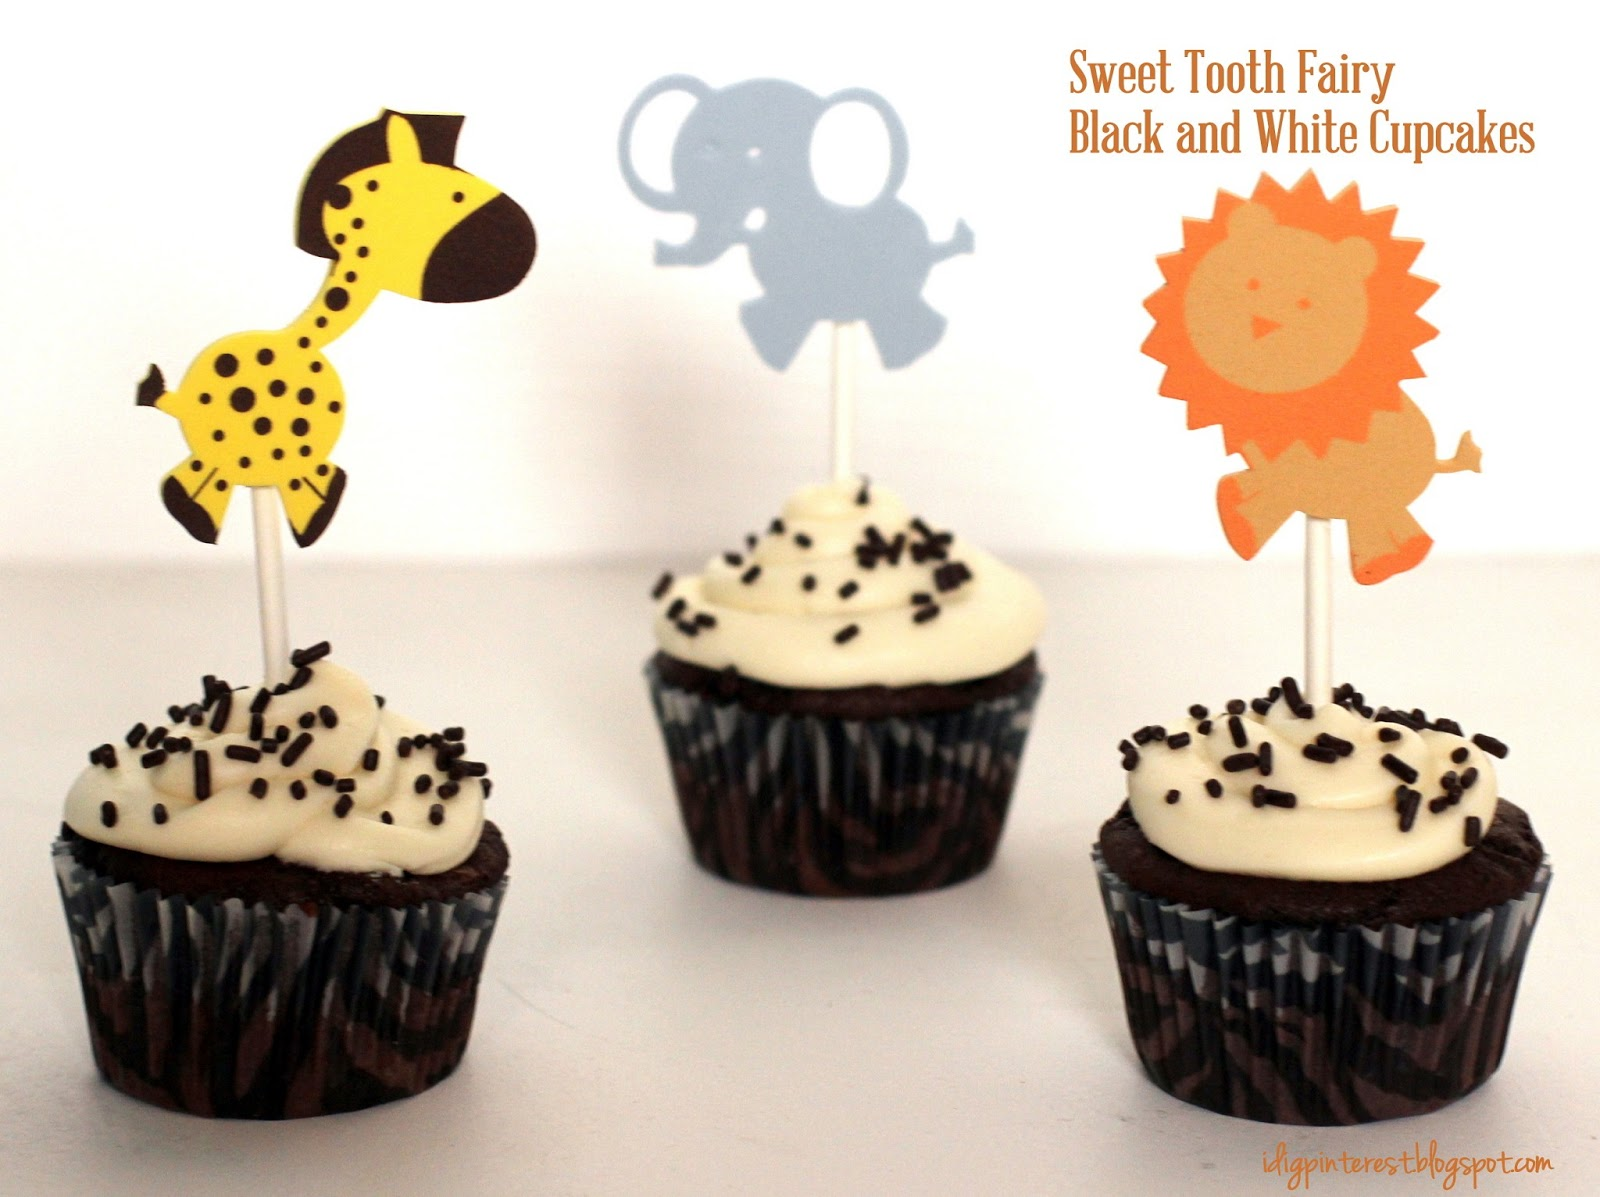 Cake Toppers Birthday Hobby Lobby : I Dig Pinterest: Sweet Tooth Fairy Black and White ...